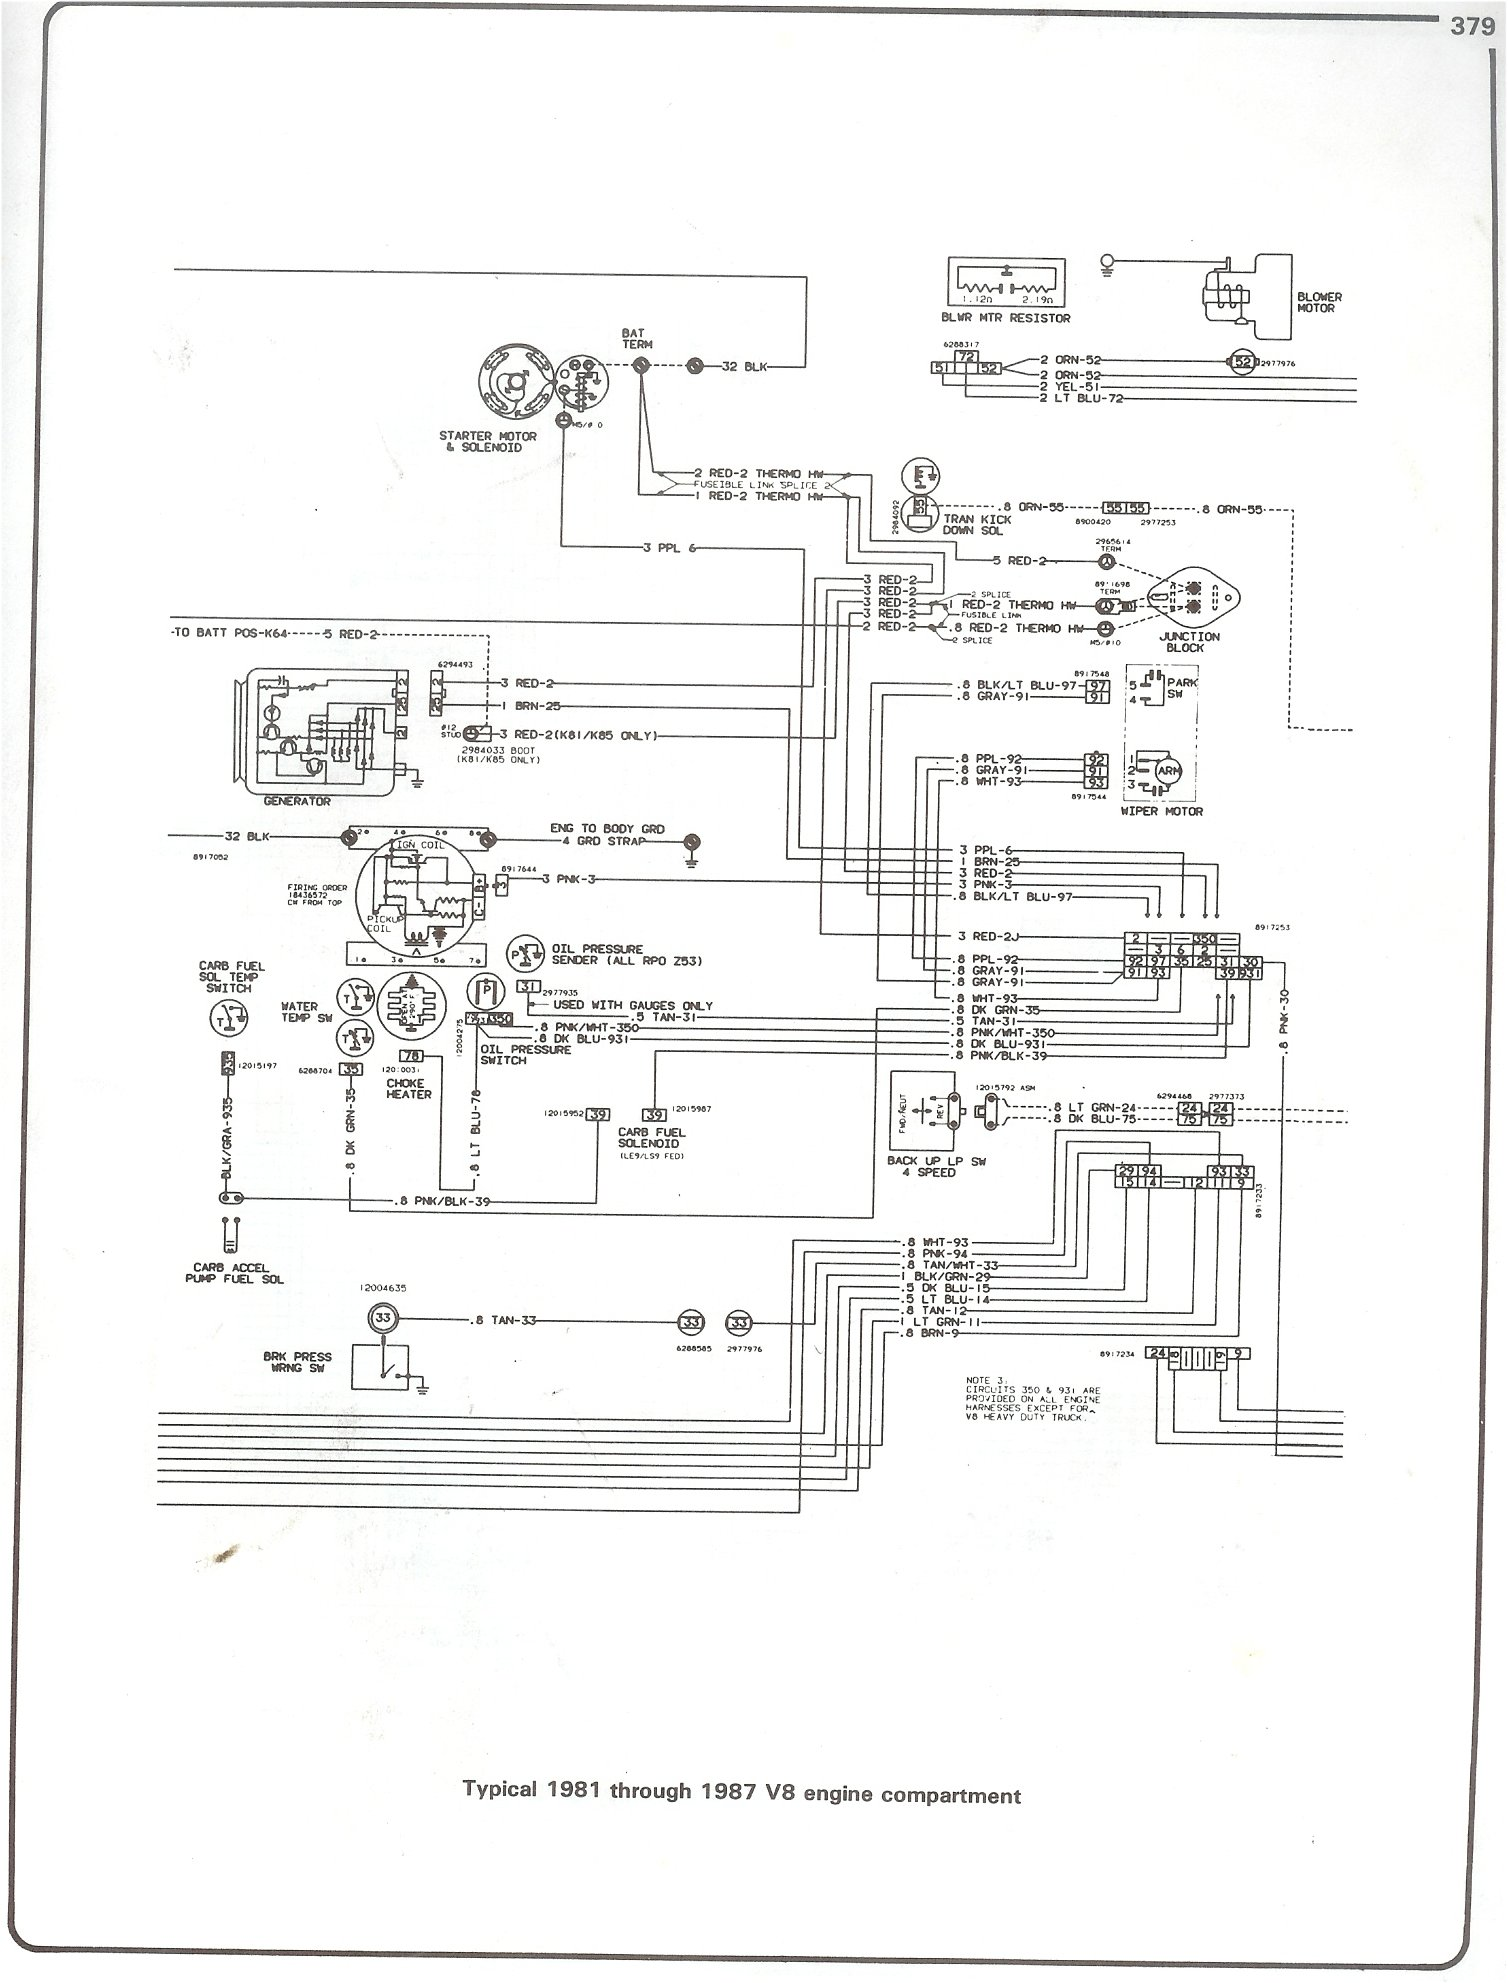 1994 Chevy Caprice Fuse Box Starting Know About Wiring Diagram 94 Starter Complete 73 87 Diagrams